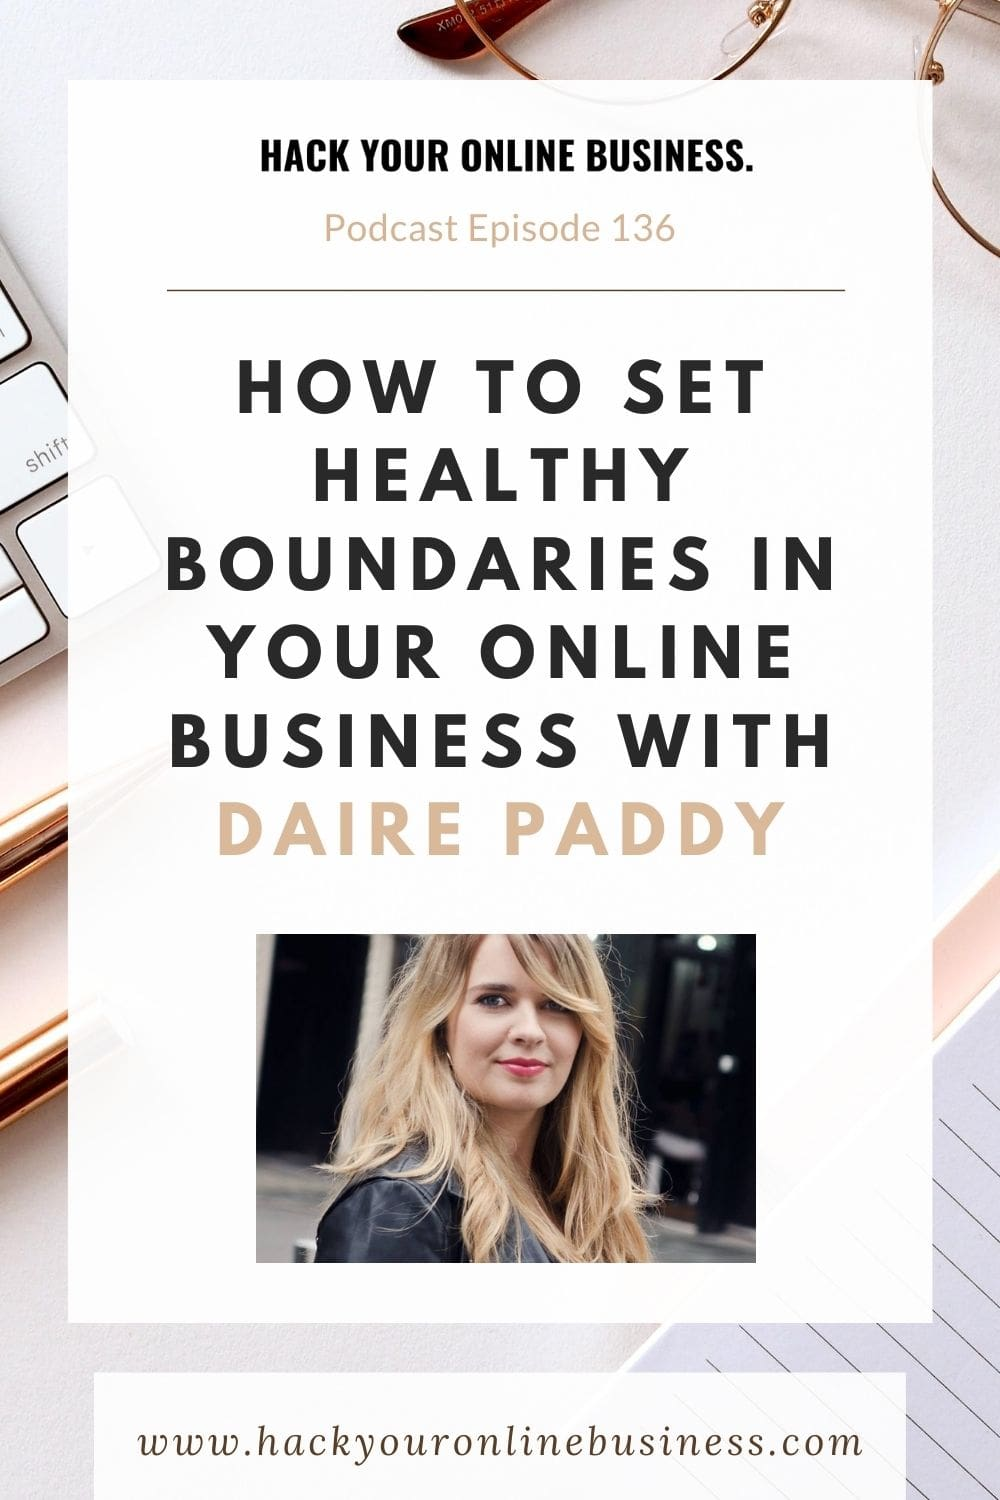 How To Set Healthy Boundaries In Your Online Business With Daire Paddy 2